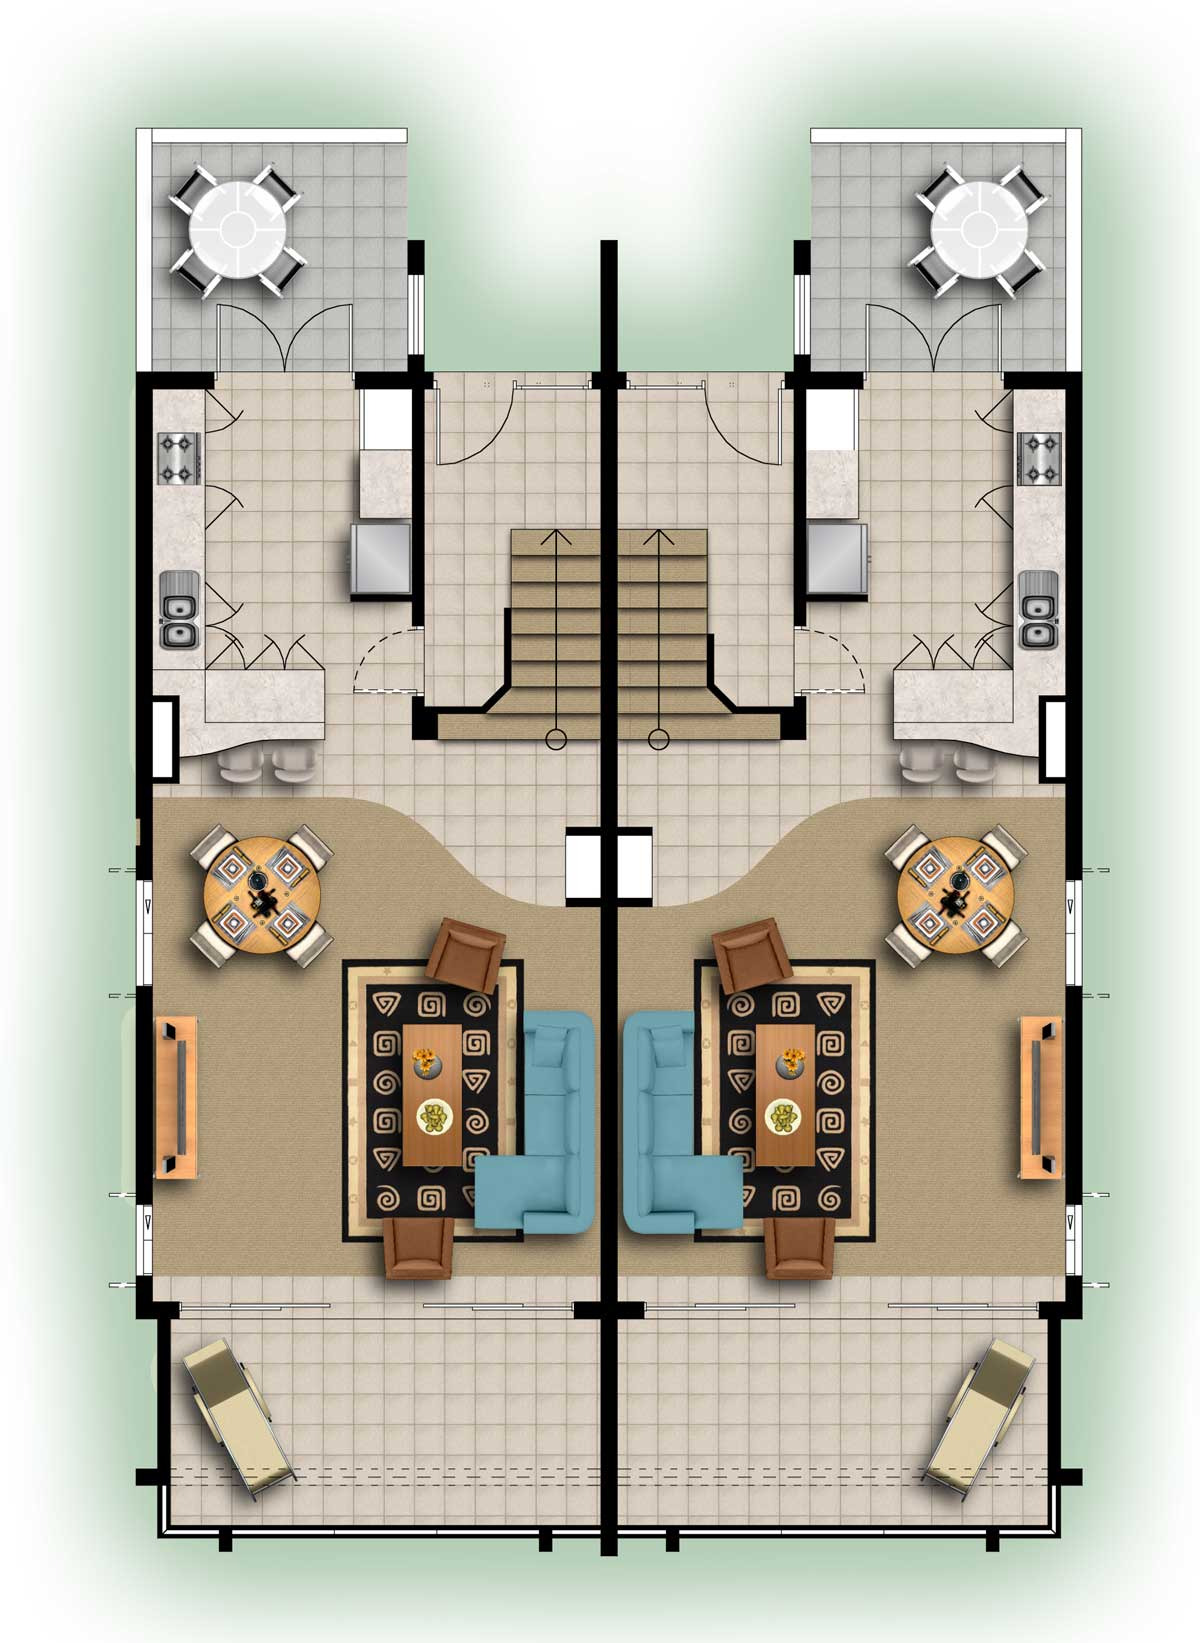 House Plans with Interior Pictures Lovely Interior Plan Drawing Floor Plans Line Free Amusing Draw